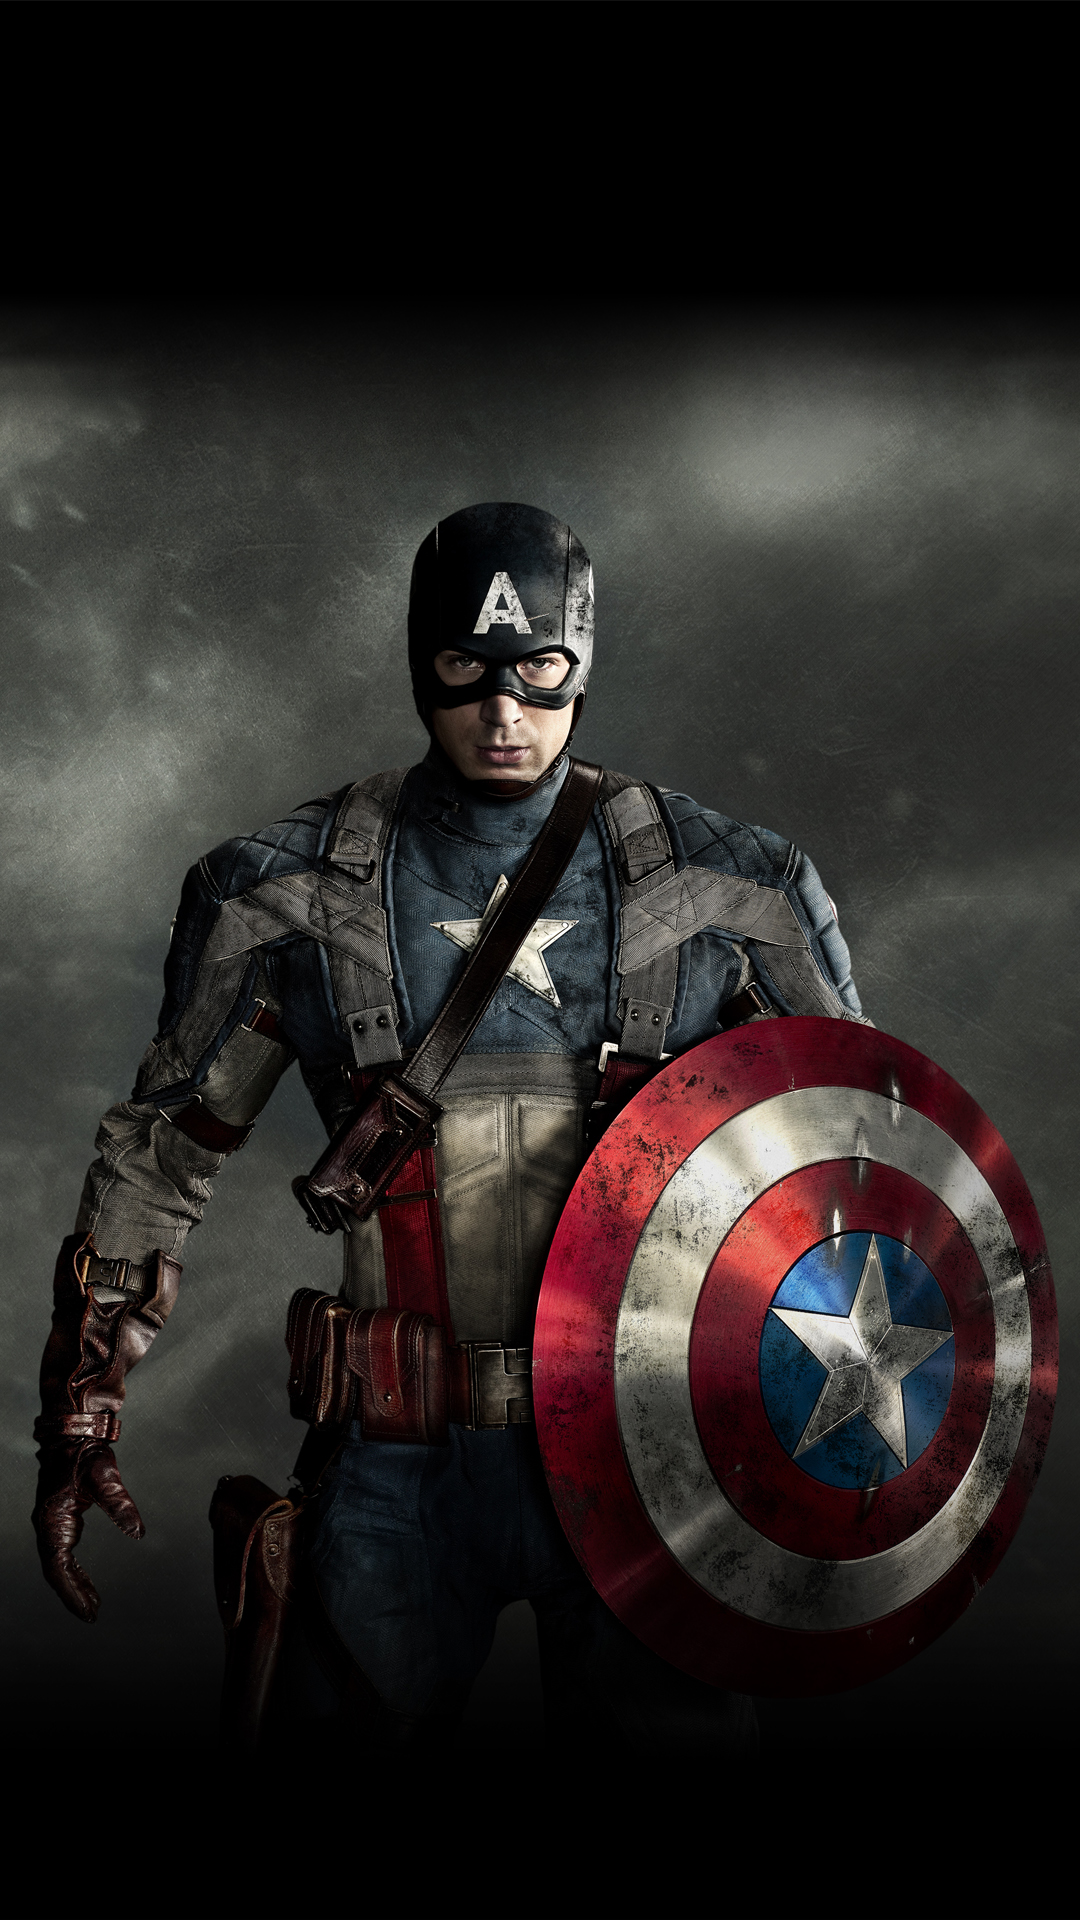 Cool wallpapers for pc download free 3d wallpapers for mobile cell - The Avengers Captain America Htc Hd Wallpaper